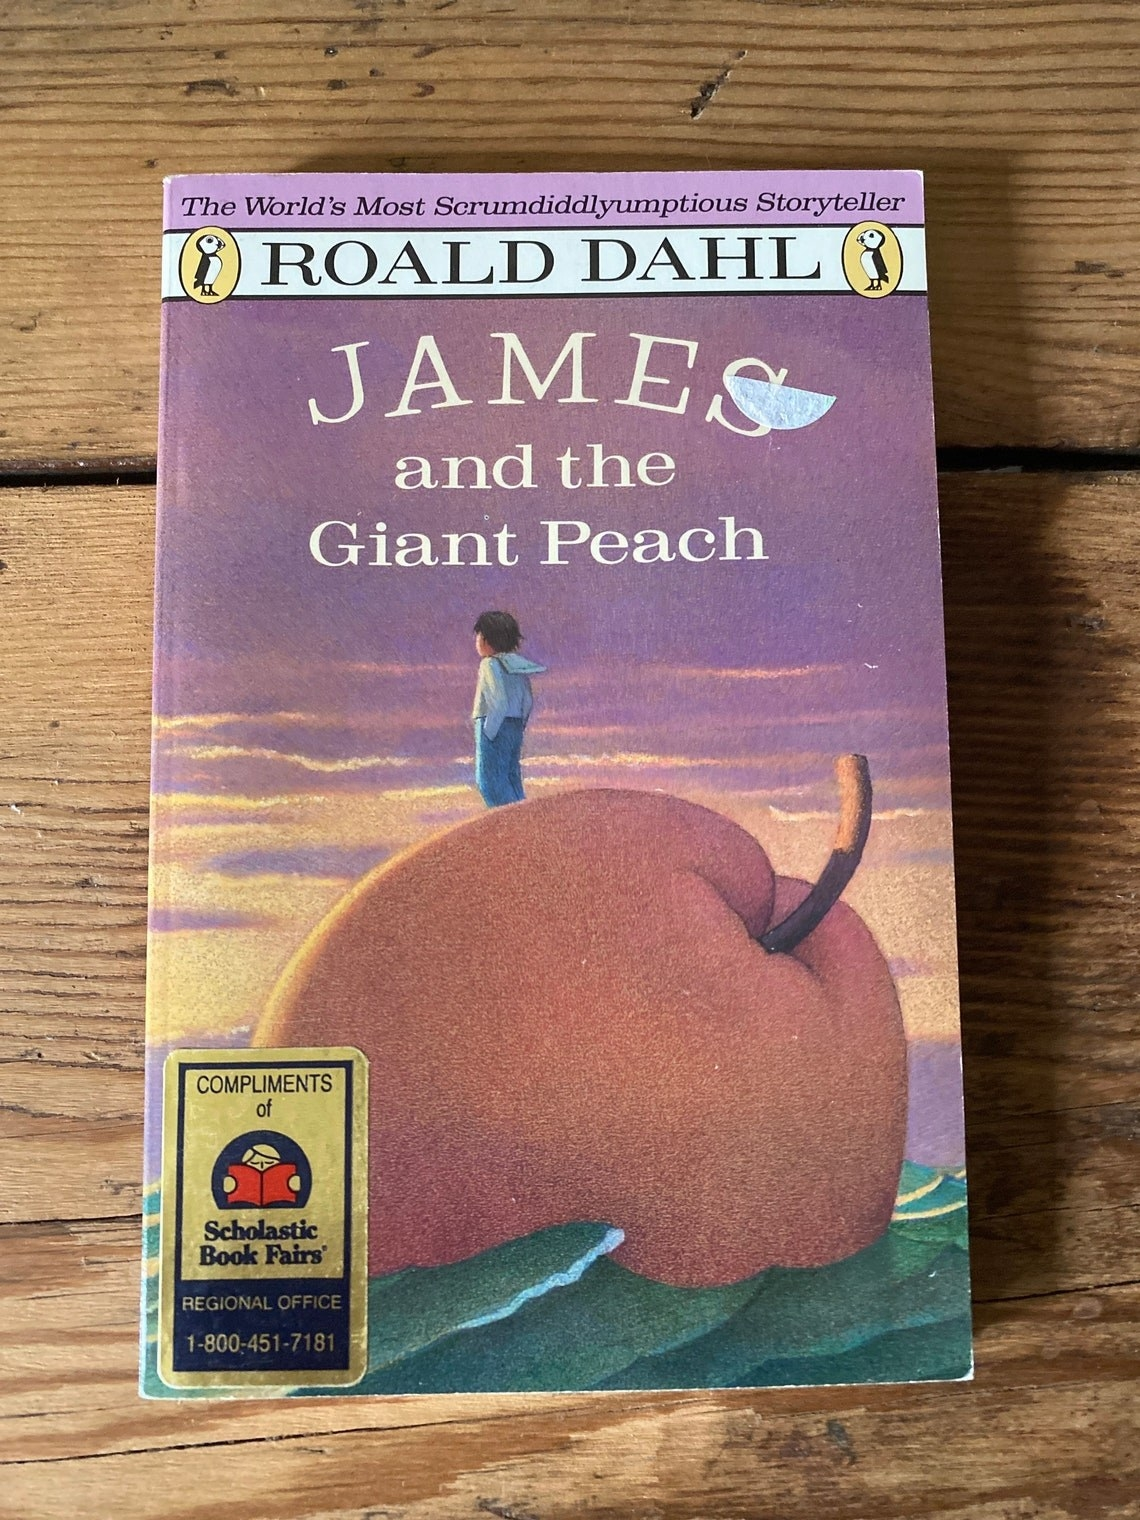 Cover with James standing on a giant peach staring into the sunset